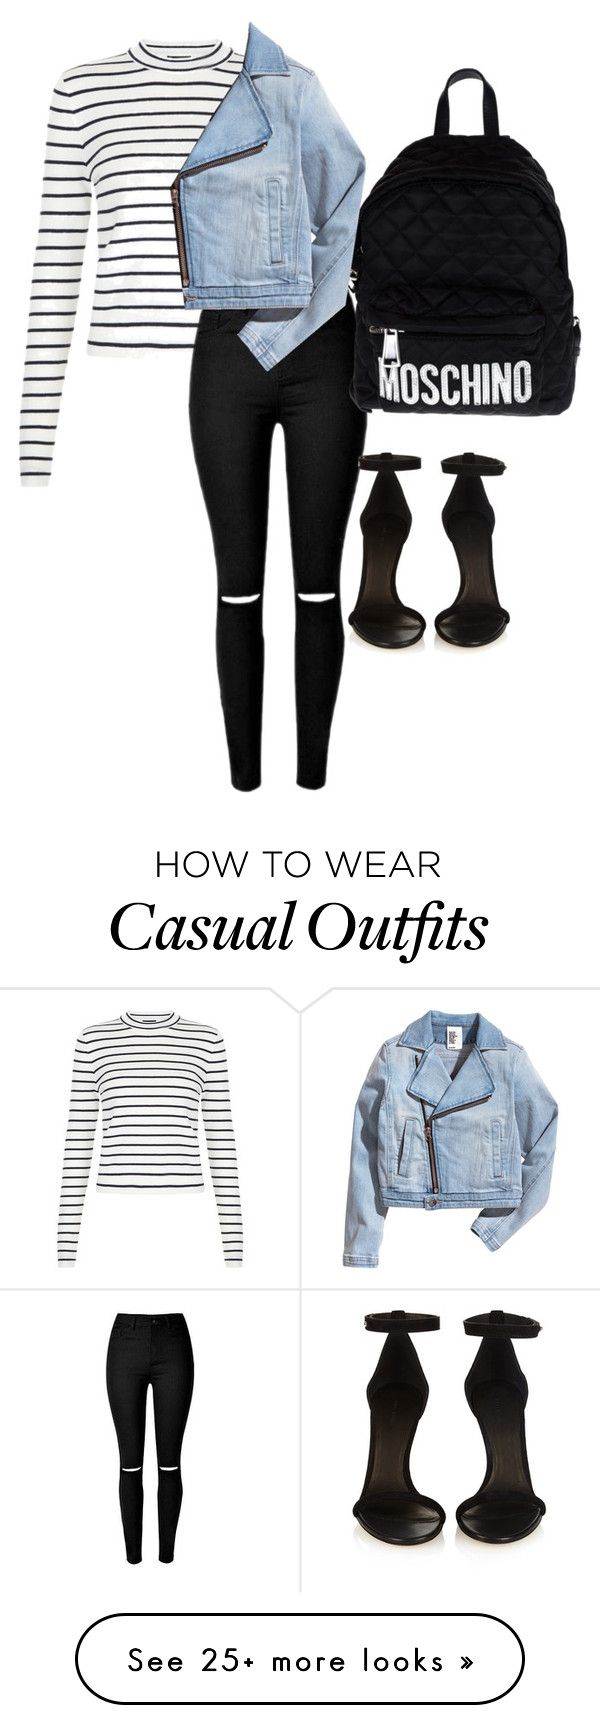 """the casual friday!"" by itastepeppermint on Polyvore featuring Isabel Marant, Moschino, women's clothing, women, female, woman, misses and juniors"